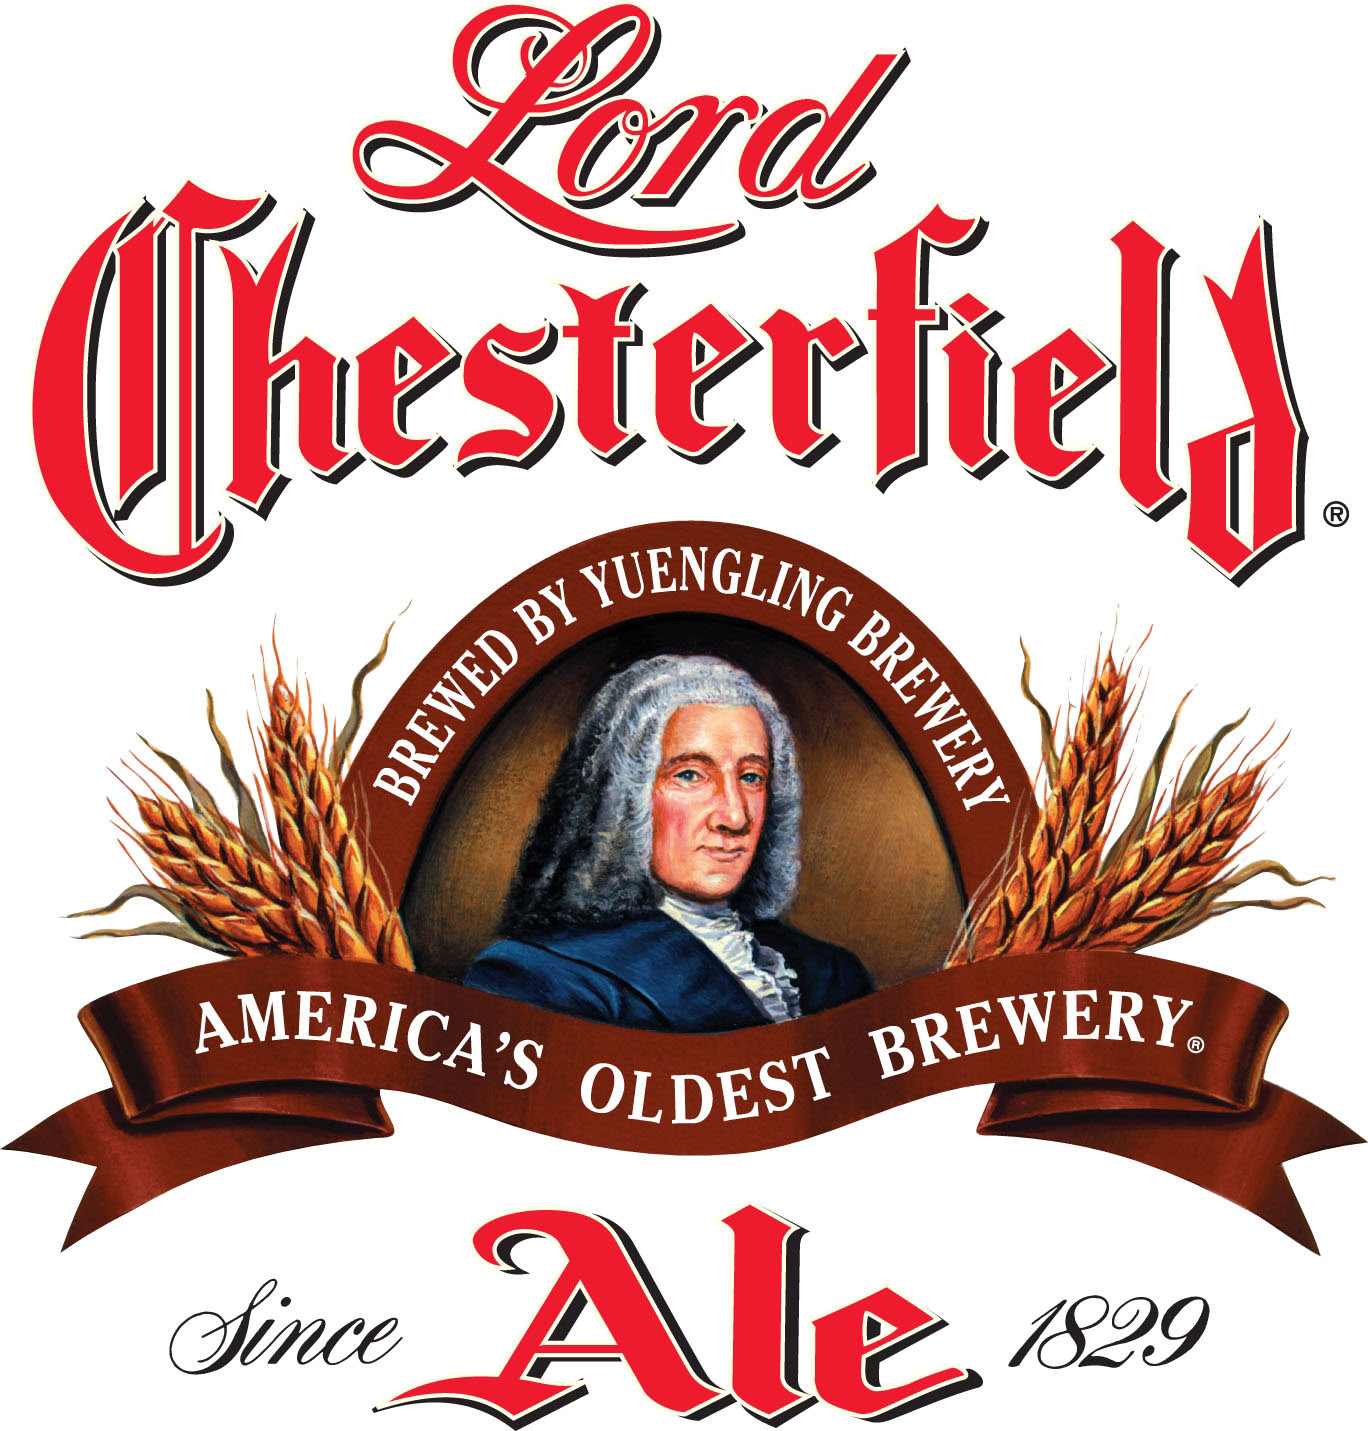 Lord chesterfield essays